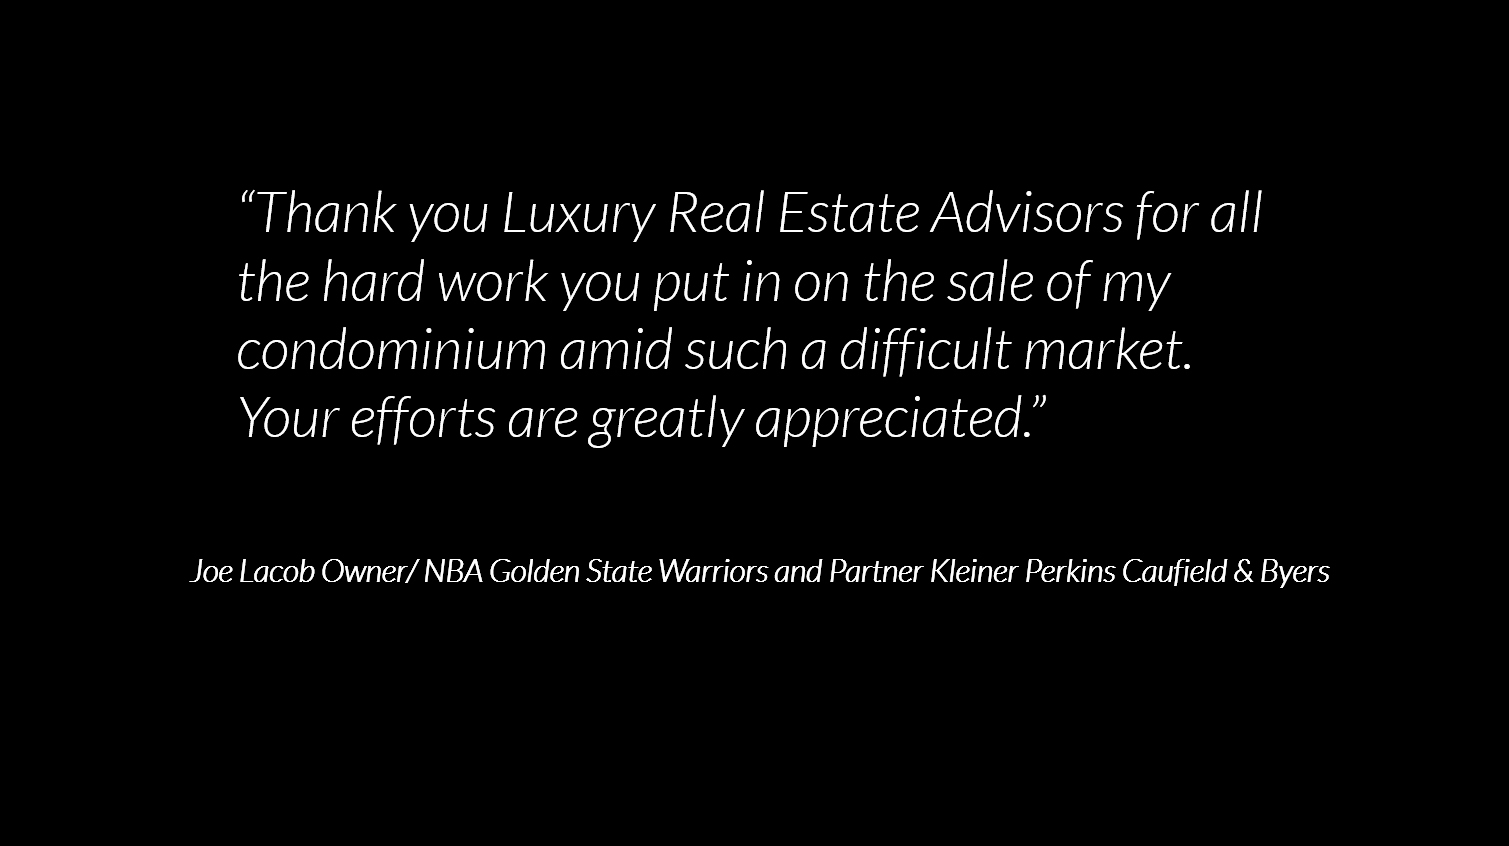 Luxury Real Estate Advisors